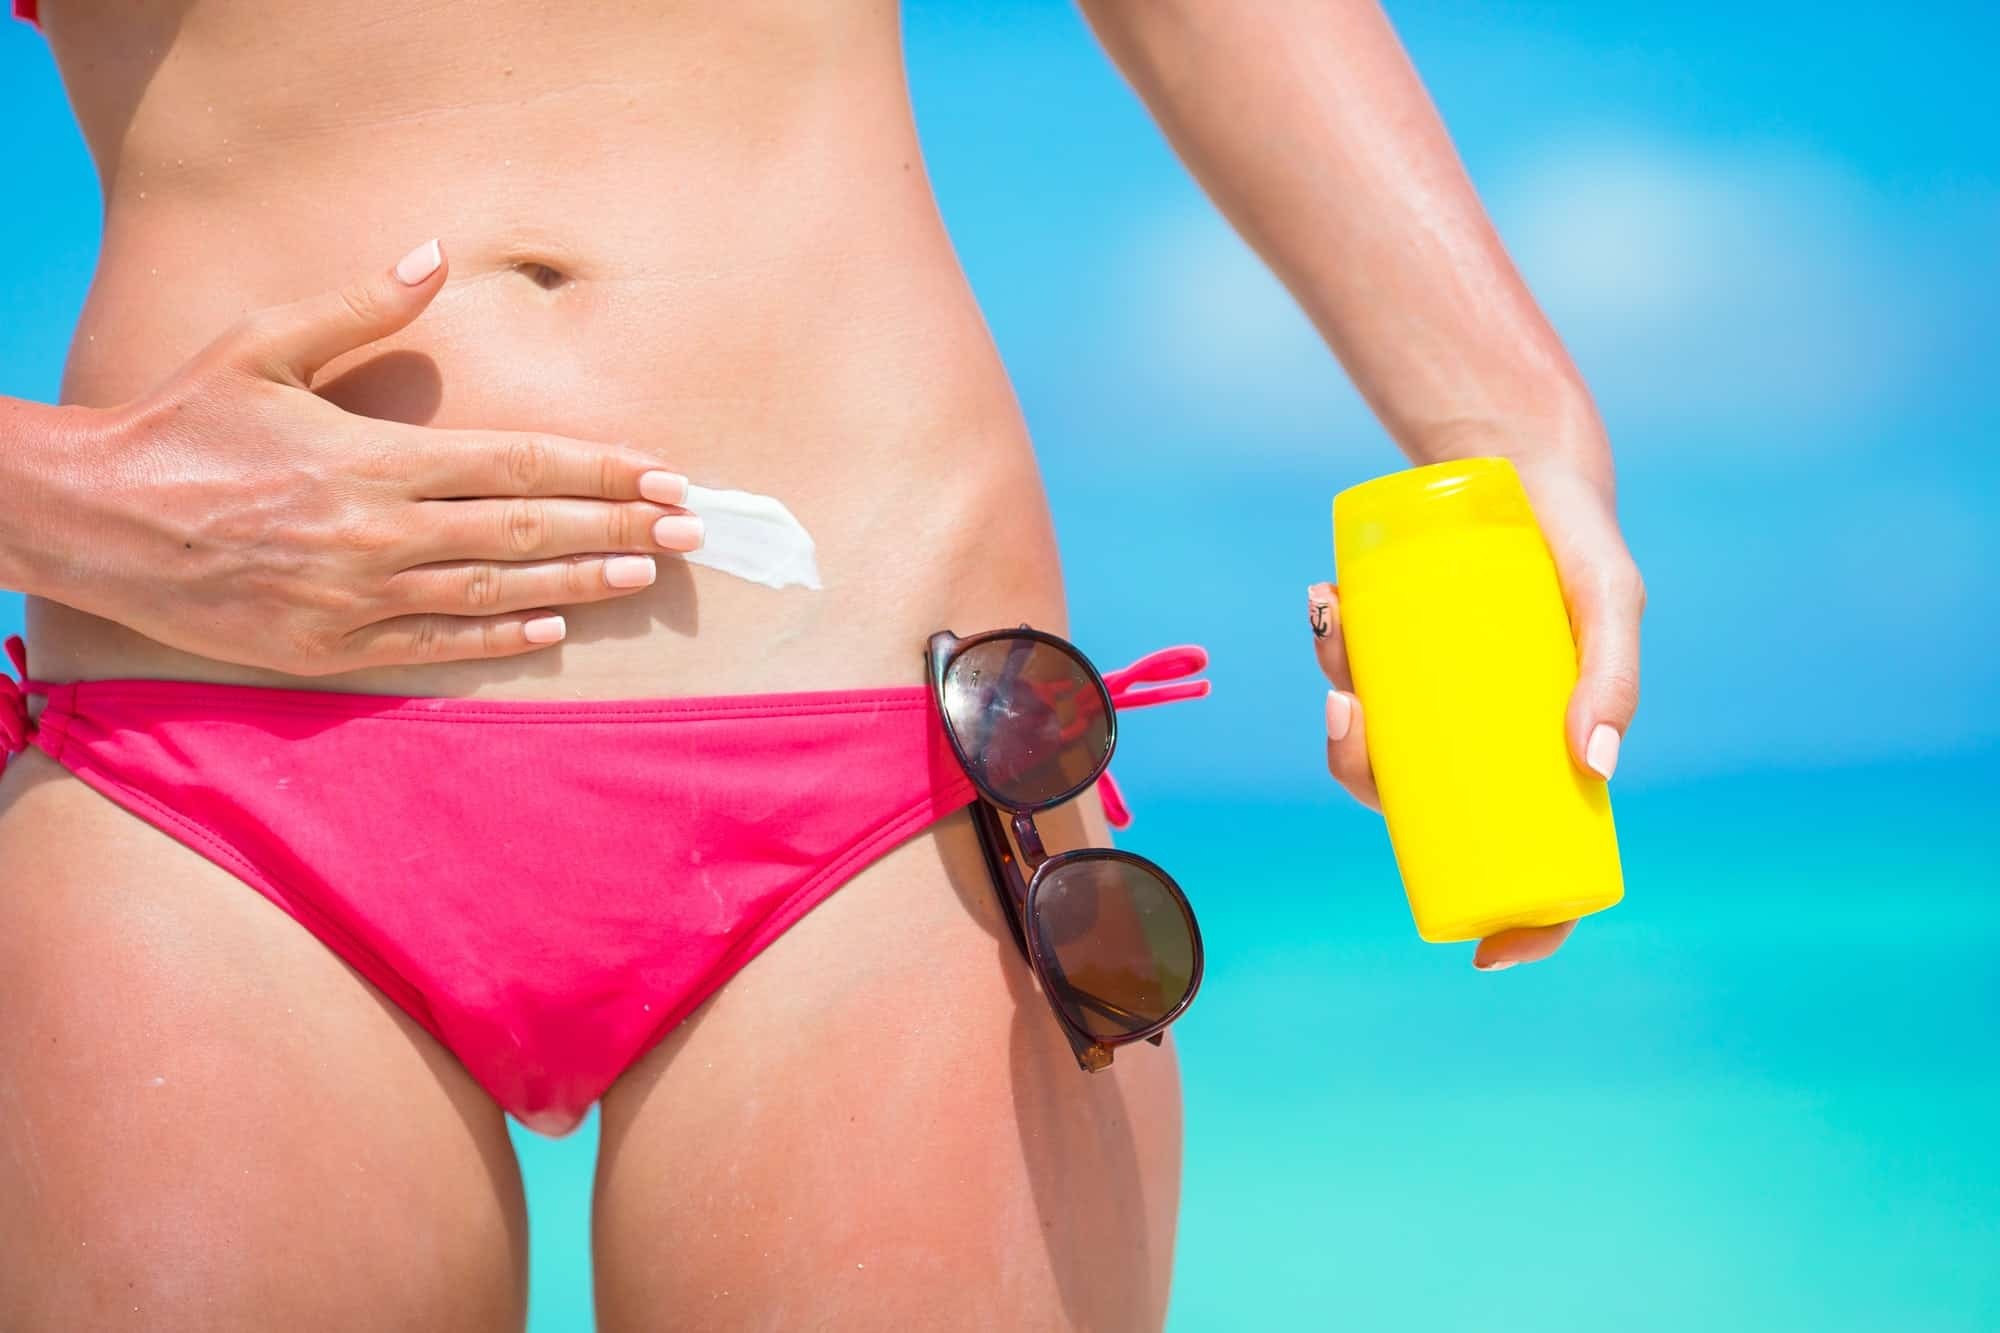 Buy sunscreens made up of natural ingredients rather than harsh chemicals